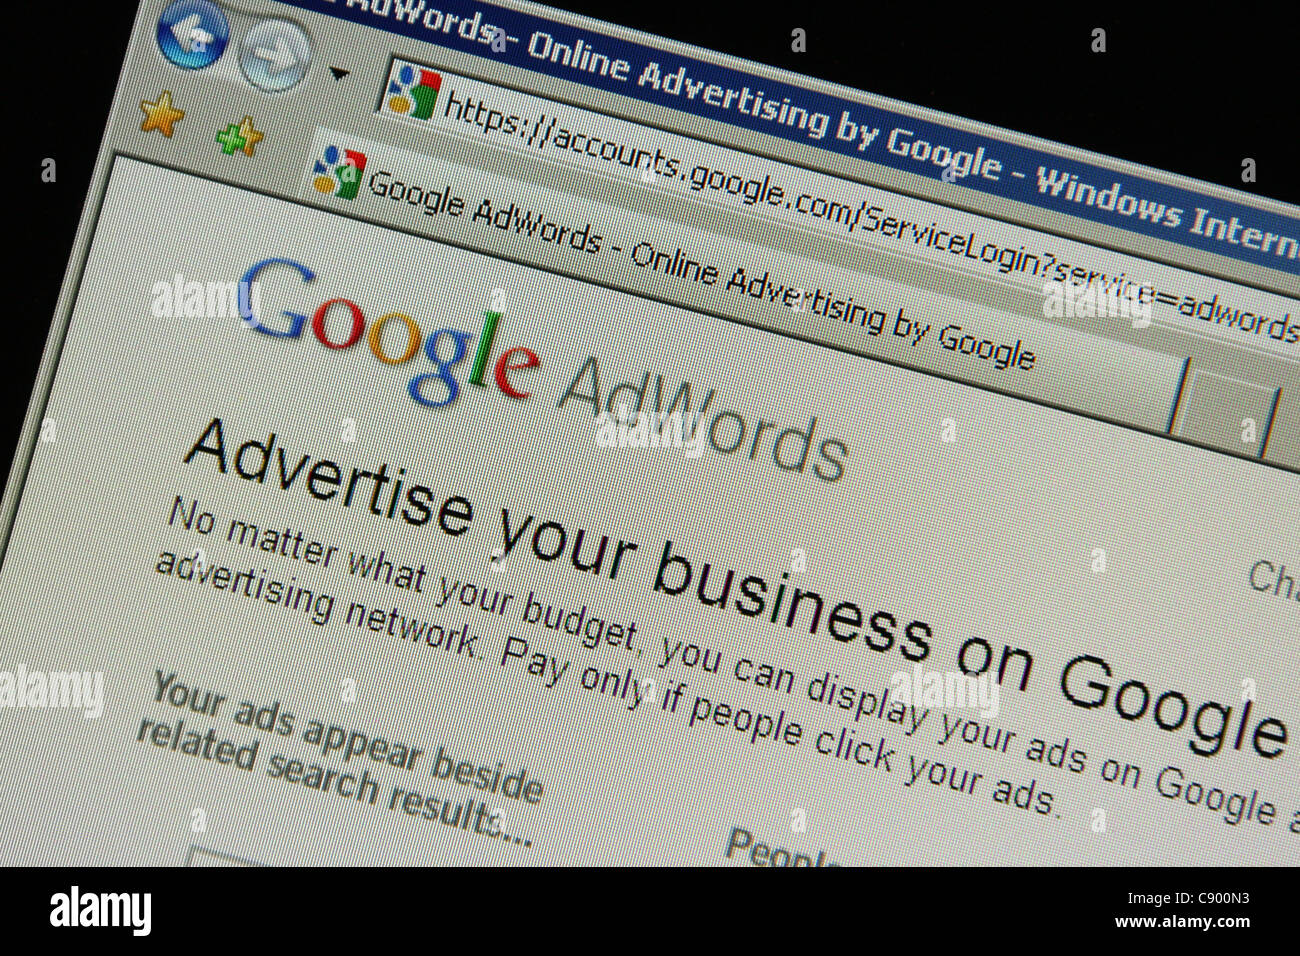 google adwords free online marketing and advertising tool